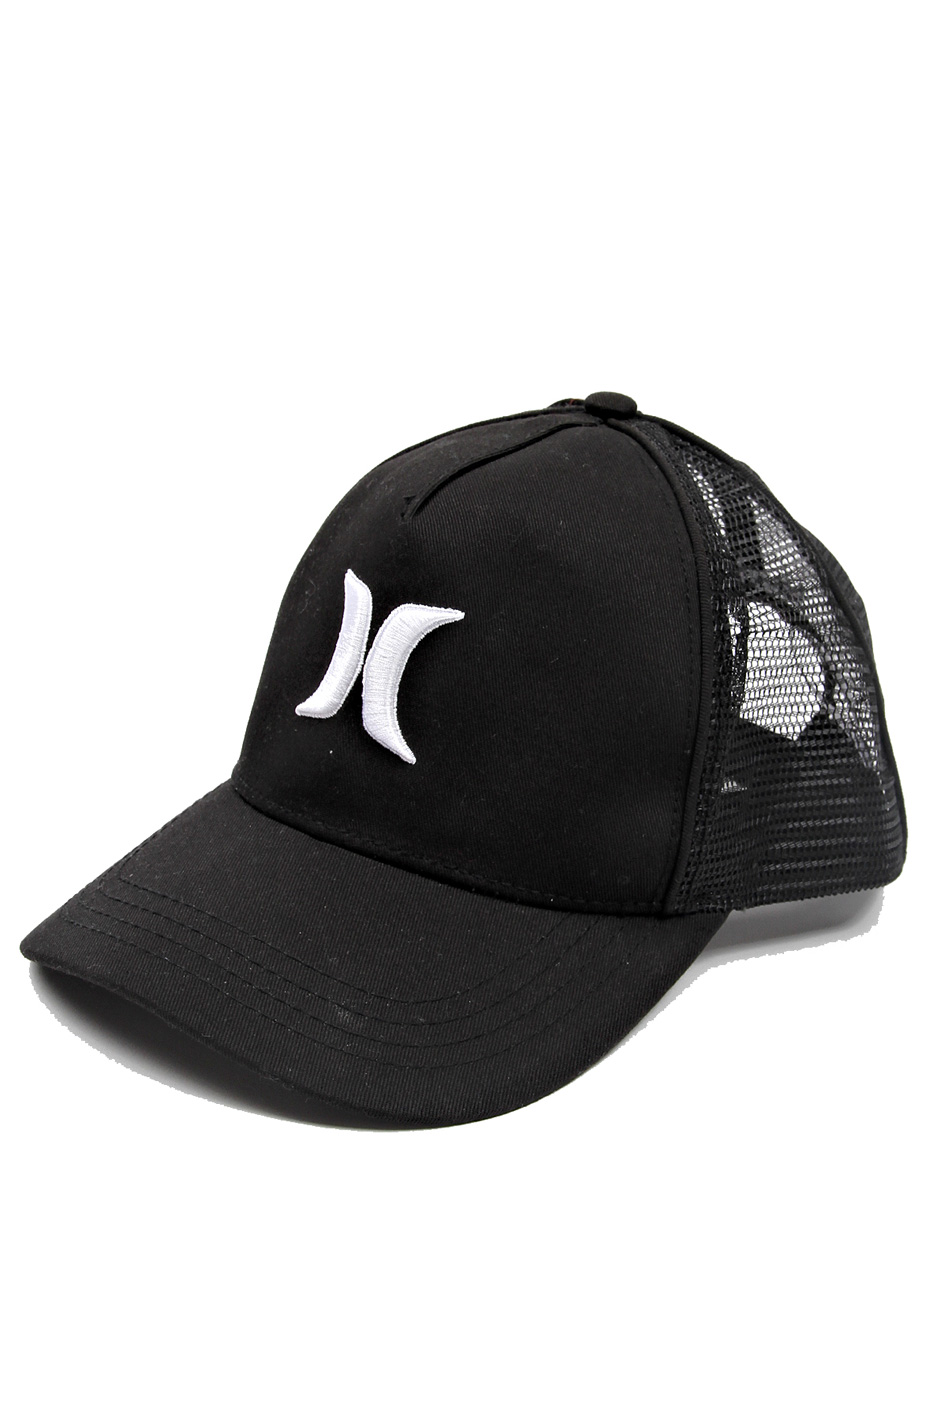 Hurley - One   Only Black - Trucker Cap - Impericon.com UK 5a8b292d9d1